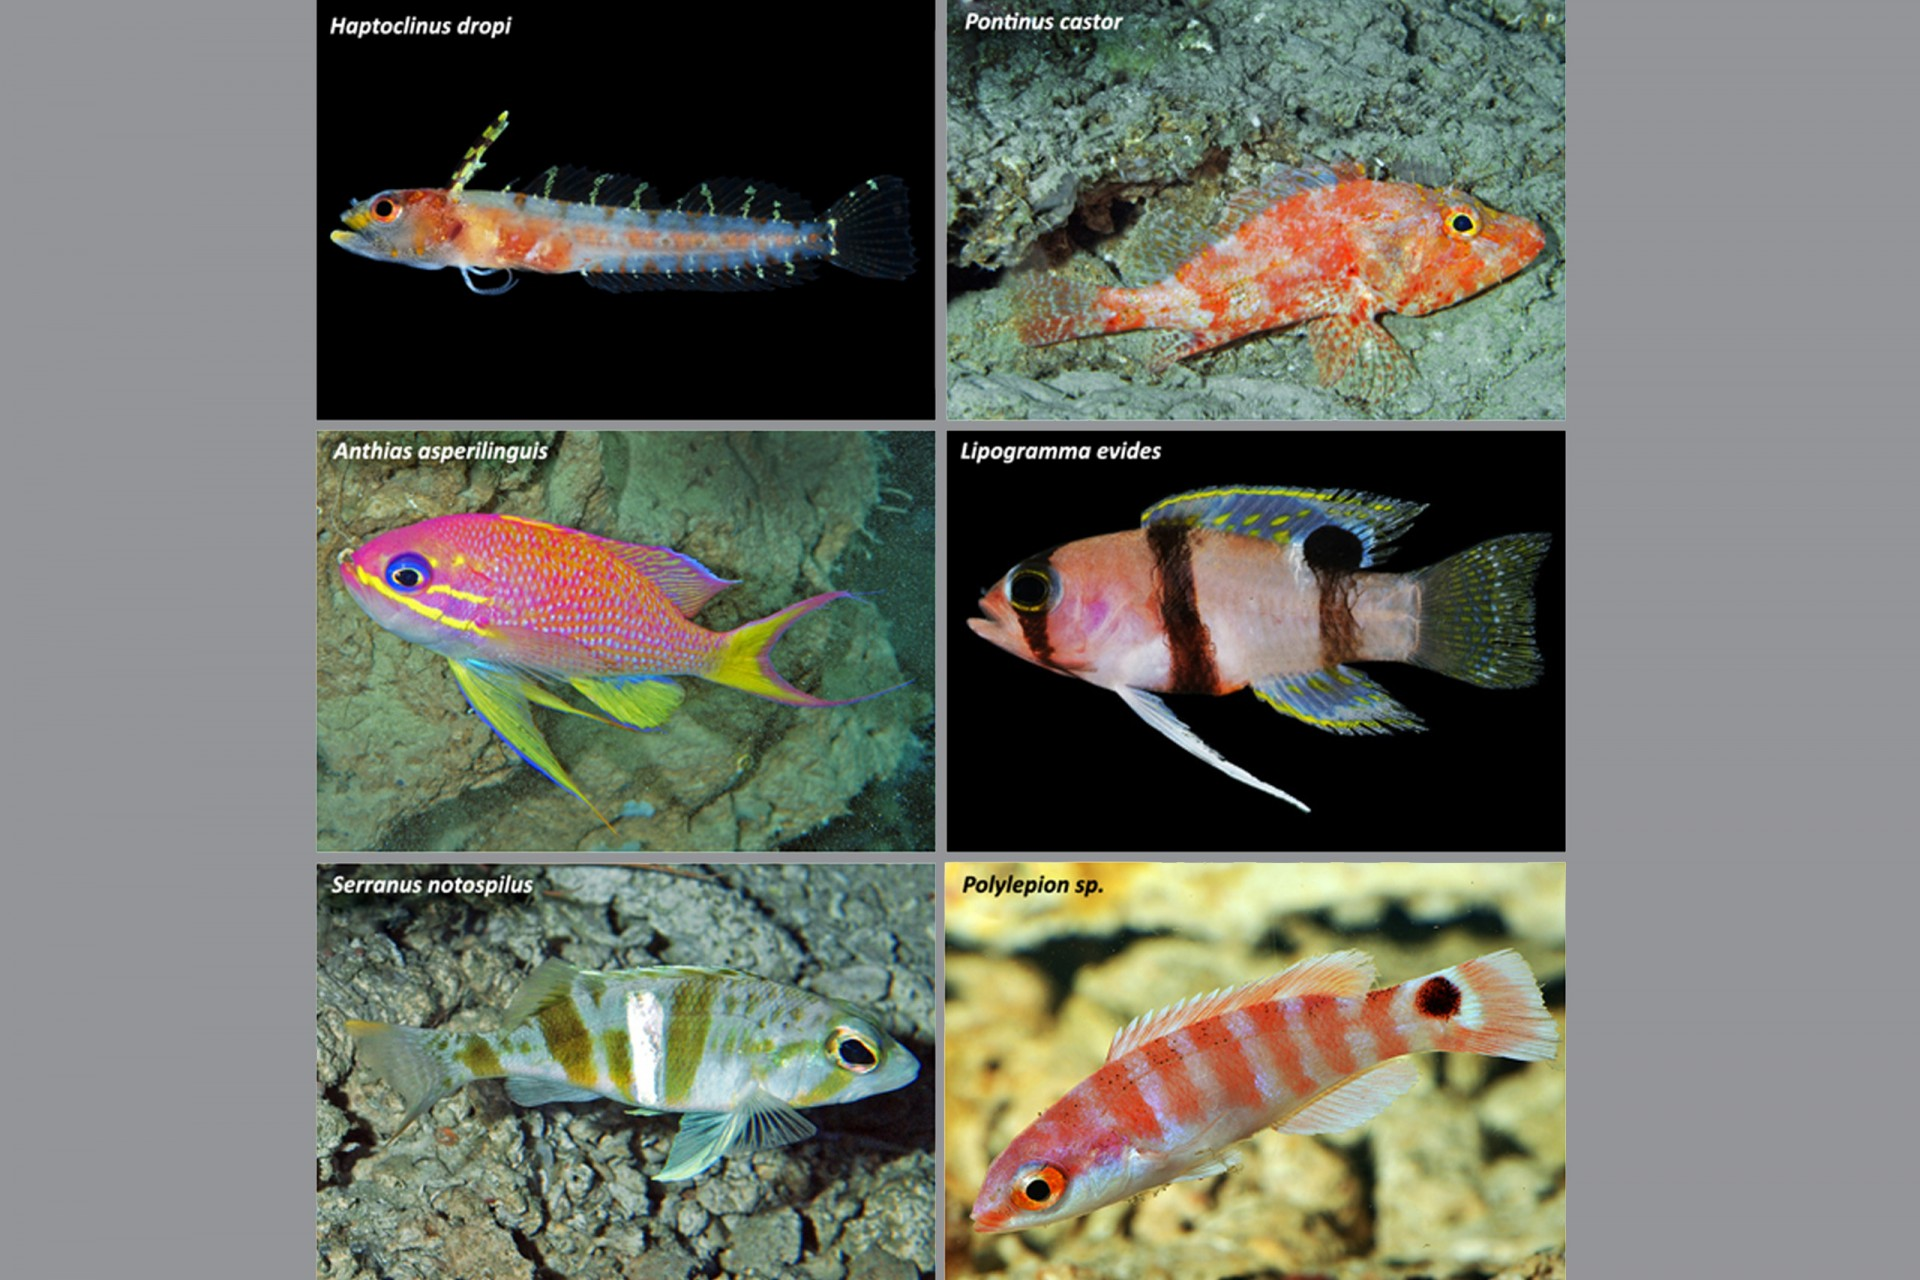 Representative Caribbean fishes inhabiting the rariphotic zone off Curaçao